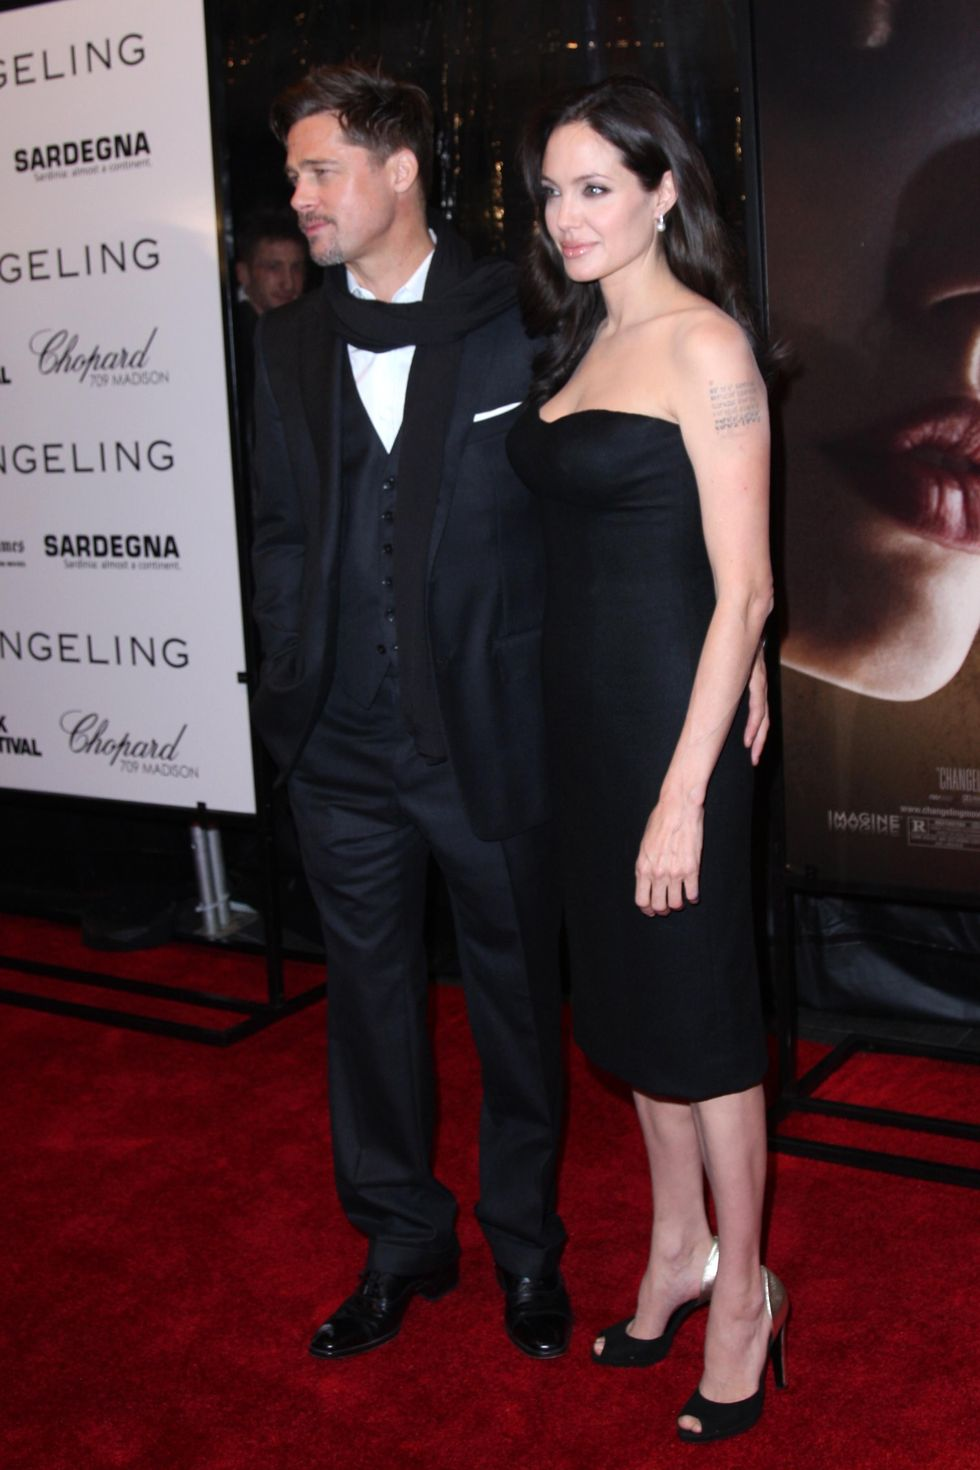 angelina-jolie-changeling-premiere-in-new-york-19